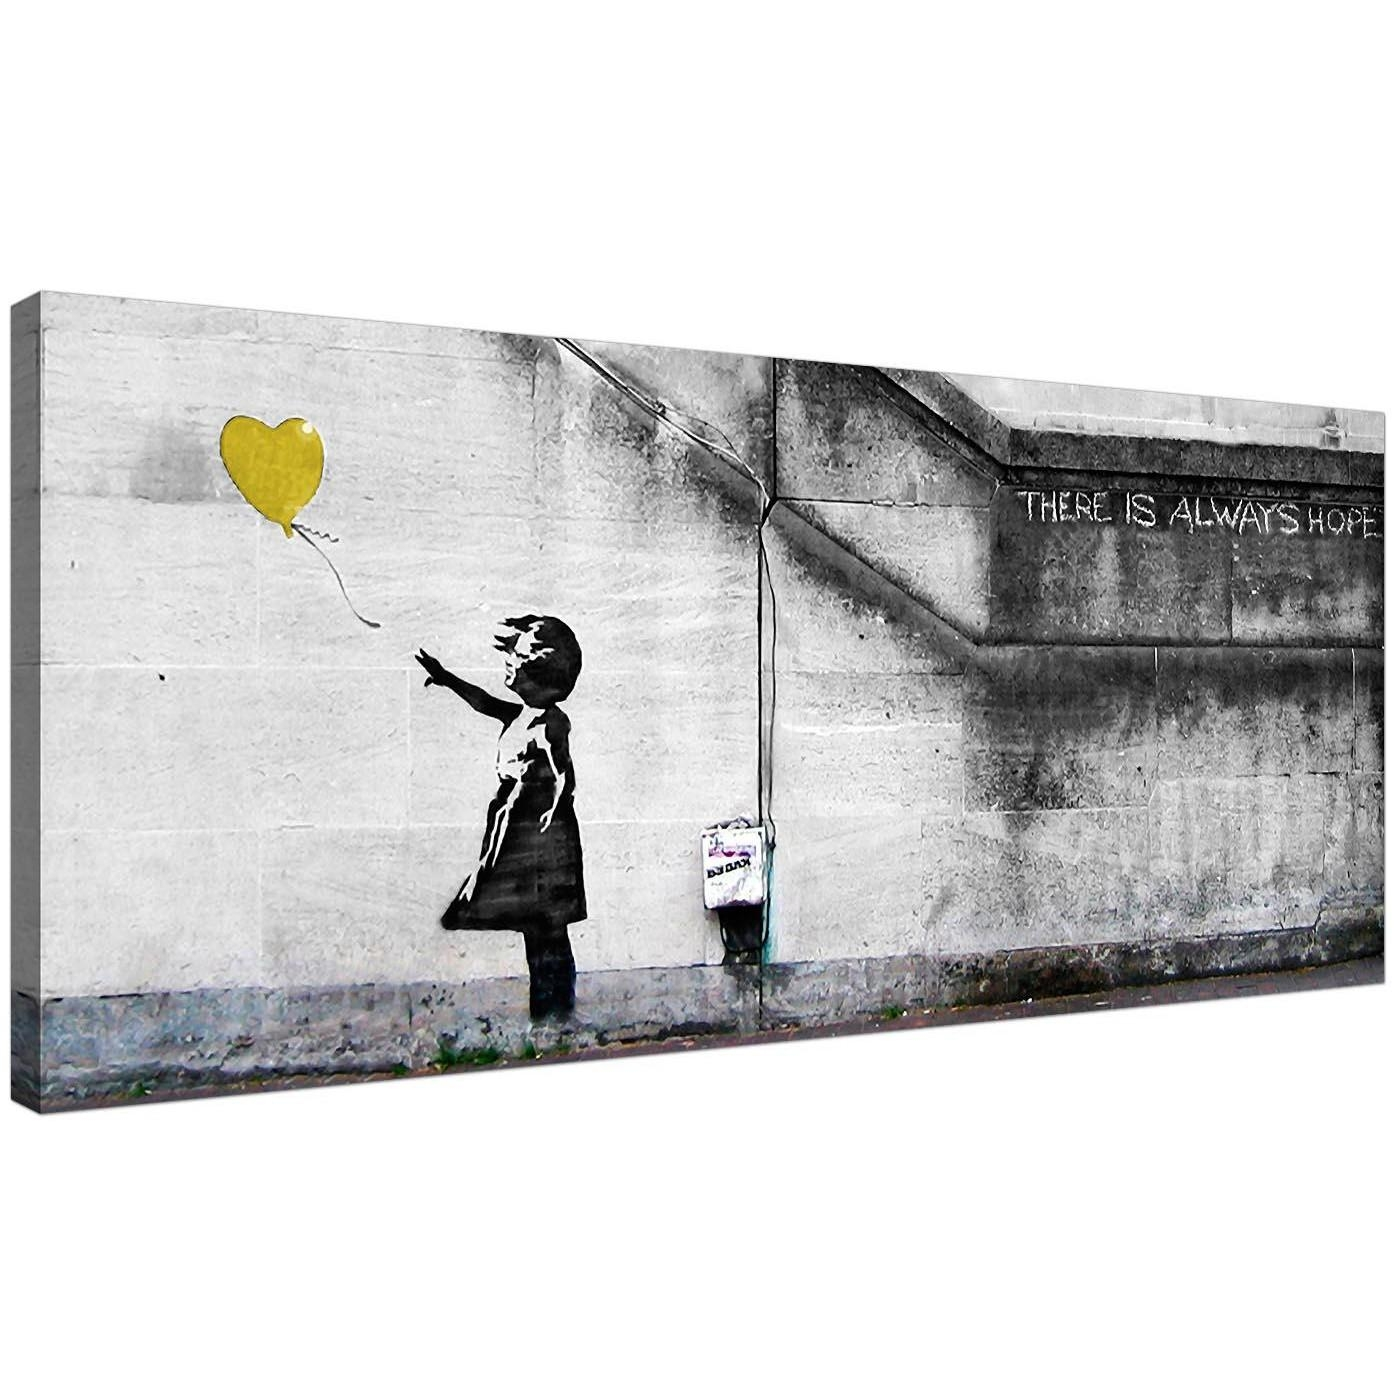 Cheap Yellow Canvas Art Of Banksy Balloon Girl Pertaining To Yellow Grey Wall Art (View 19 of 20)